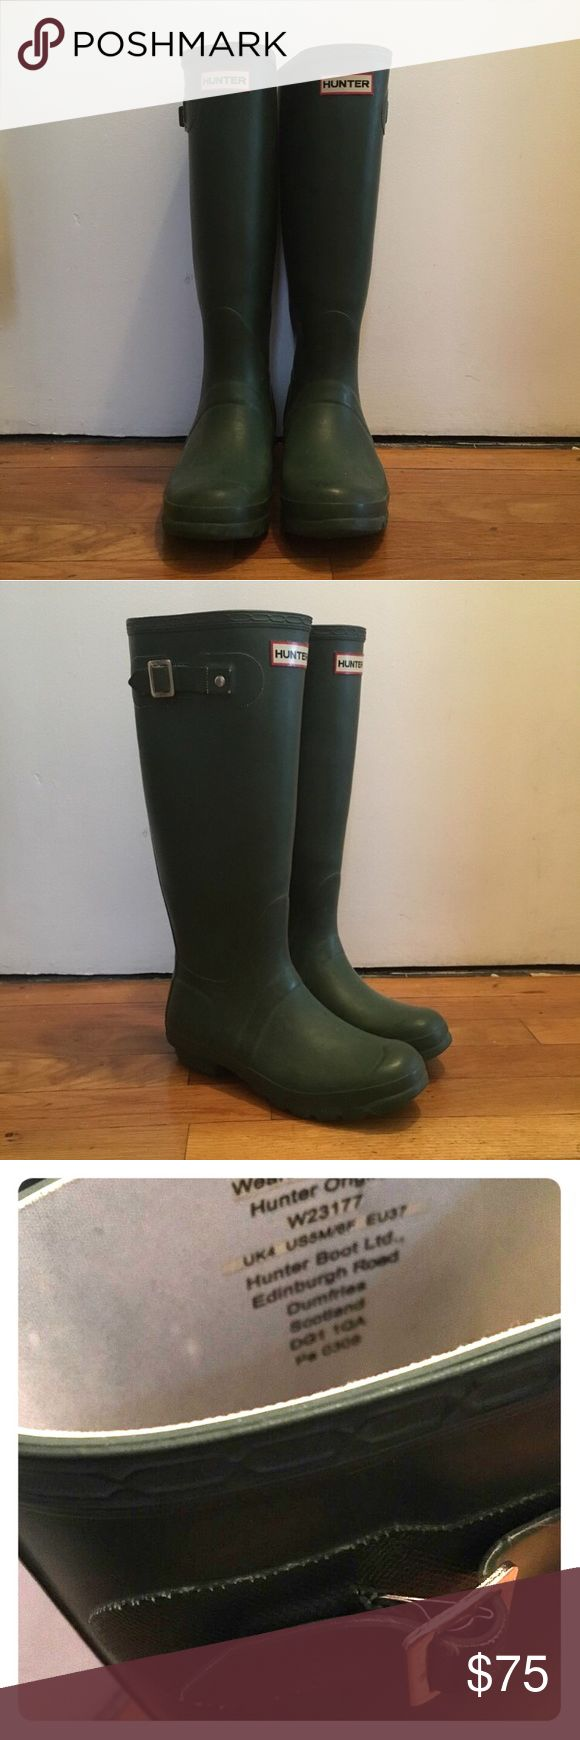 Original Tall Hunter Boots Forest Green Original Hunter Tall Rain Boots, with adjustable strap. Very good condition.  Color: Forest Green.  Labeled Size: EU 37.  Fits US 38, or US size 7.5 - 8 (my usual size).  Original price $120.  #hunterboots #rainboots #snow #waterproof #hunter #boots Hunter Boots Shoes Winter & Rain Boots